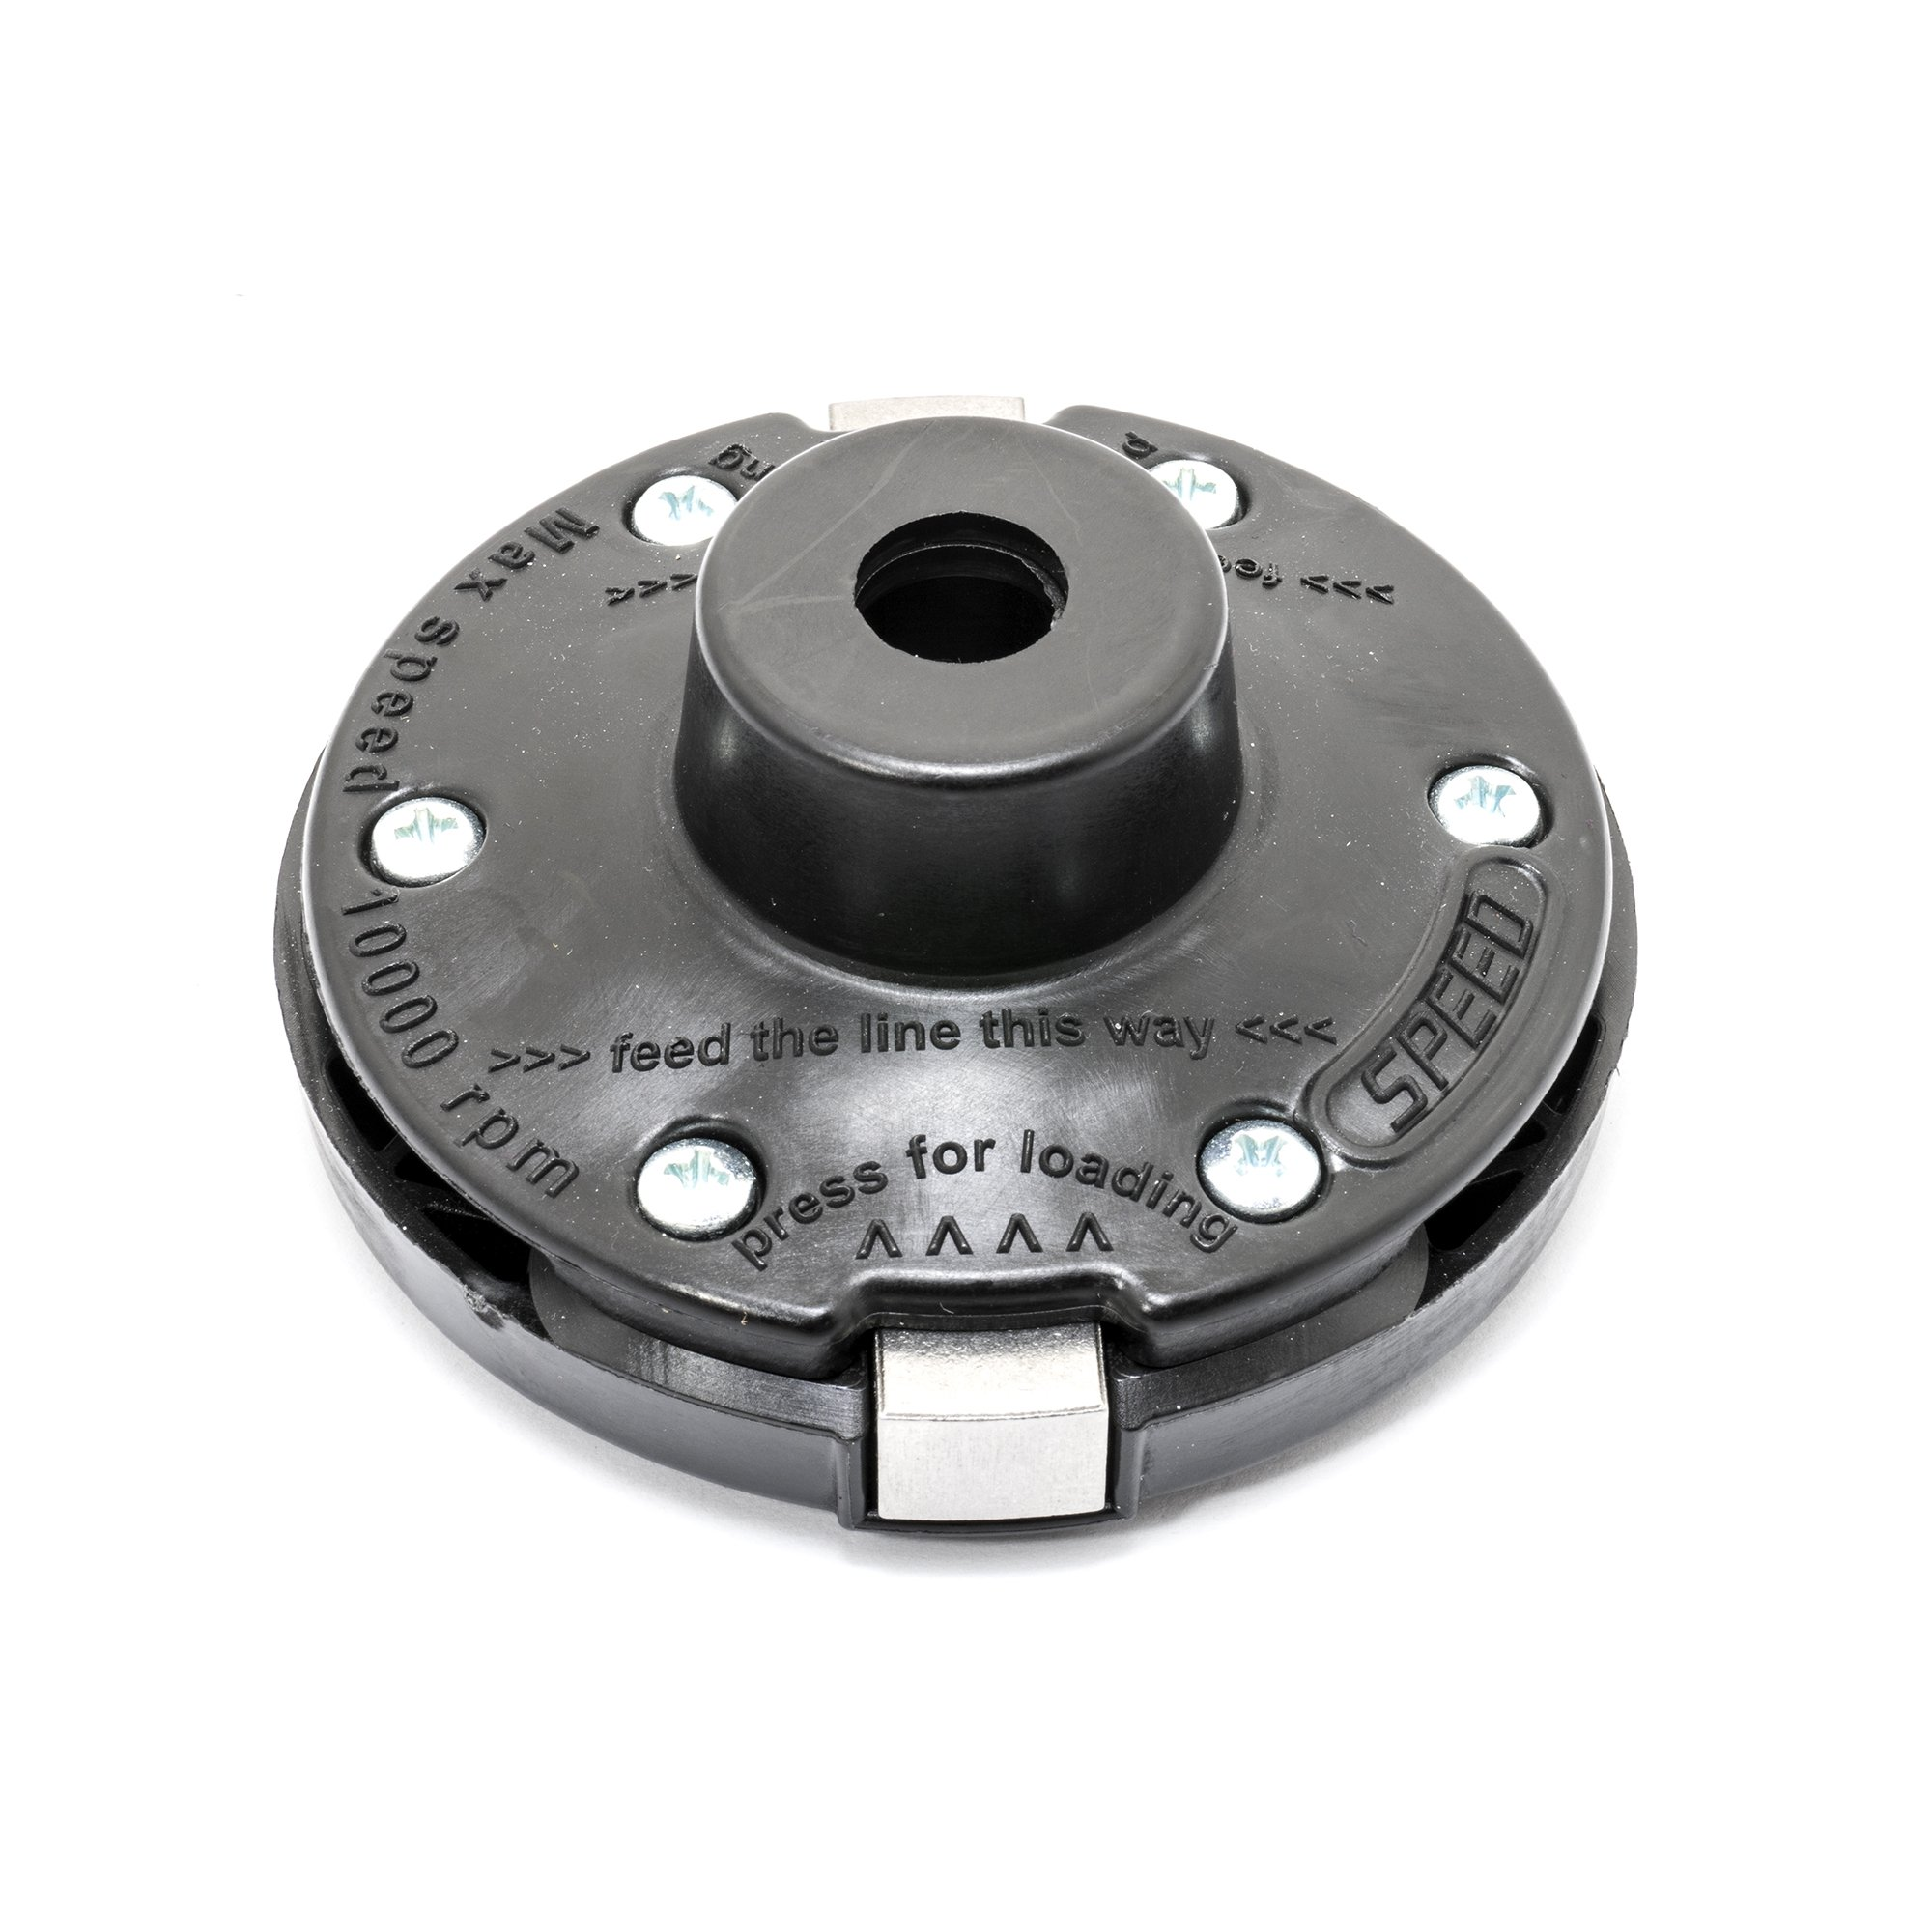 Arnold Corporation 490-060-0016 Universal Quick Load 4 Line Trimmer Head